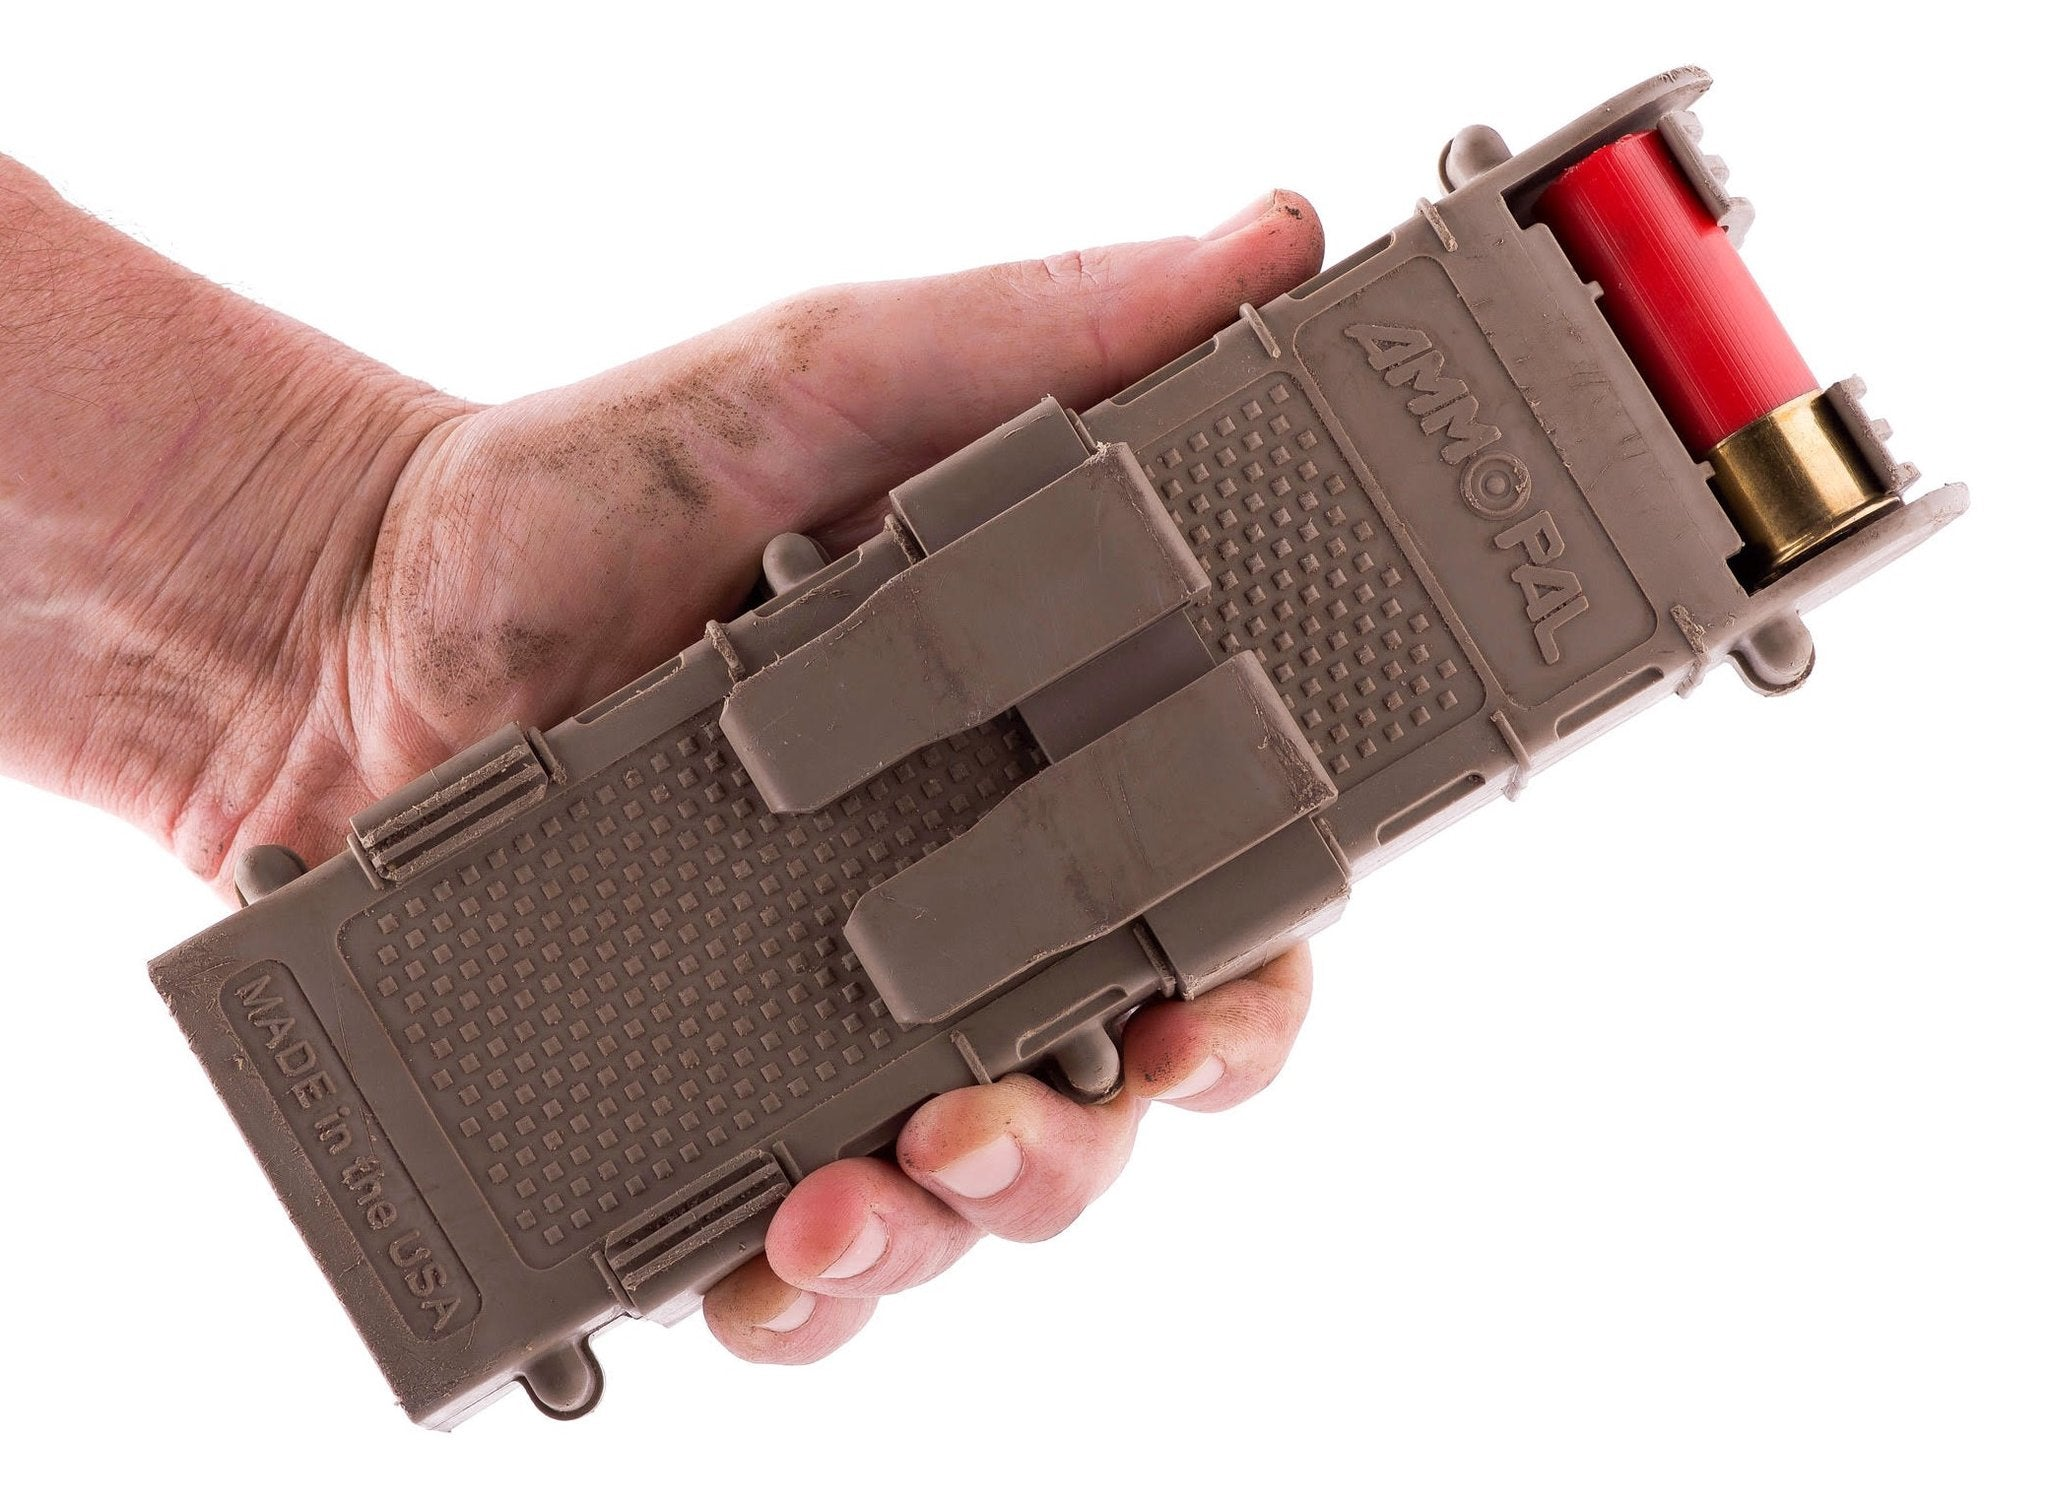 Hand holding Ammopal shotgun shell dispenser